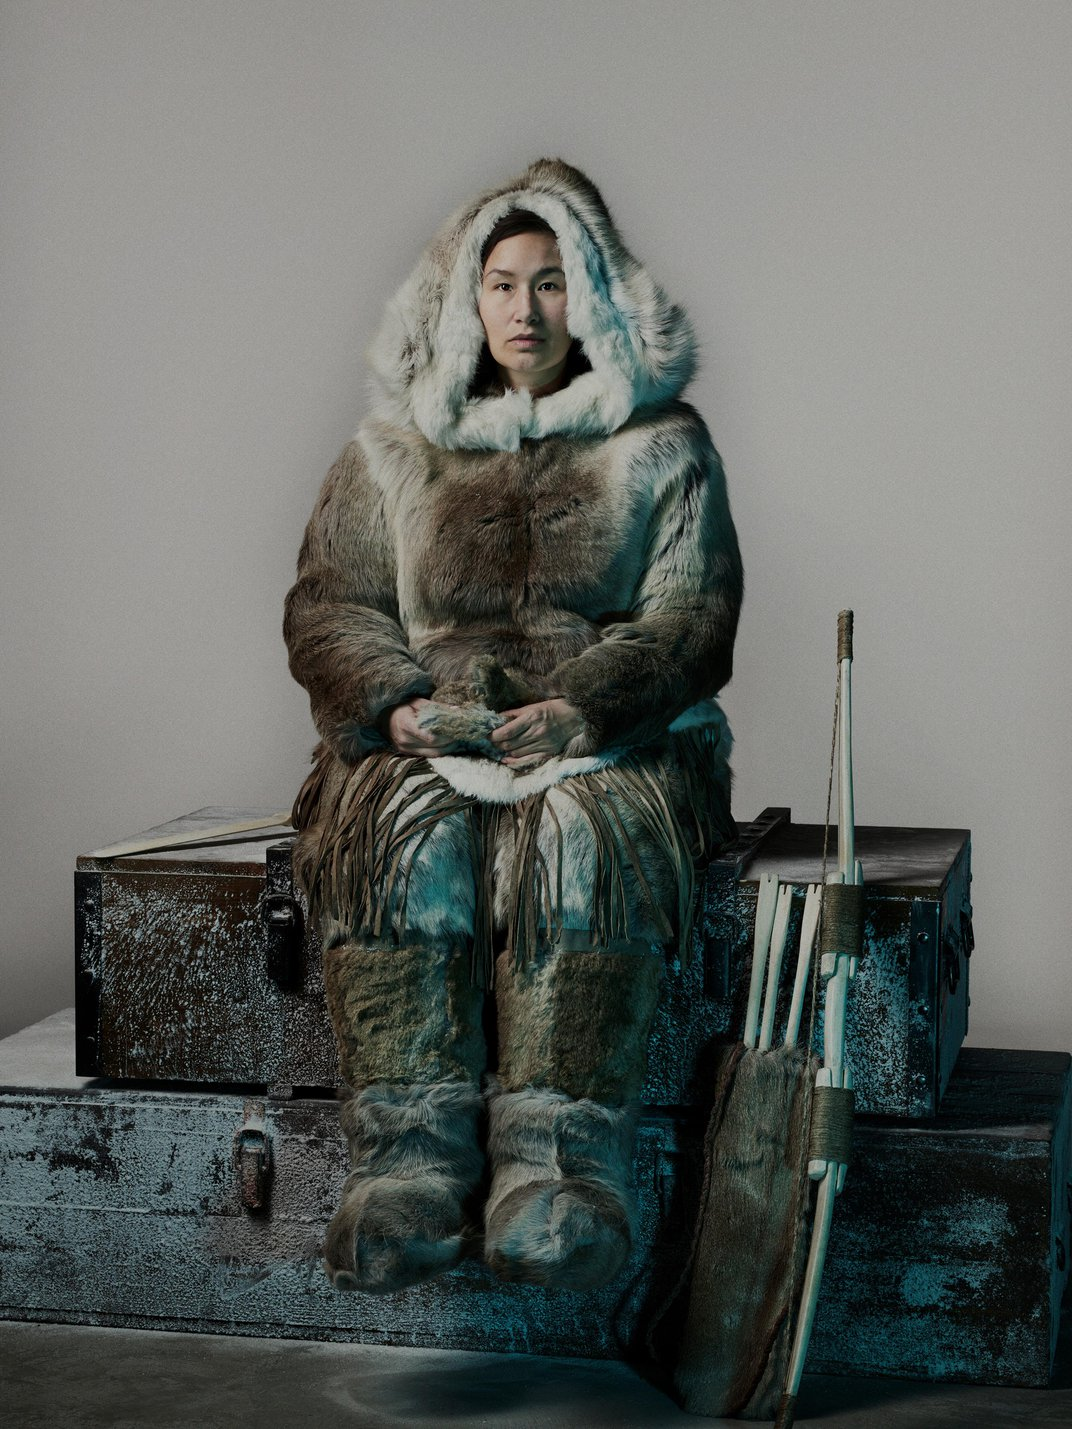 Tales of the Doomed Franklin Expedition Long Ignored the Inuit Side, But